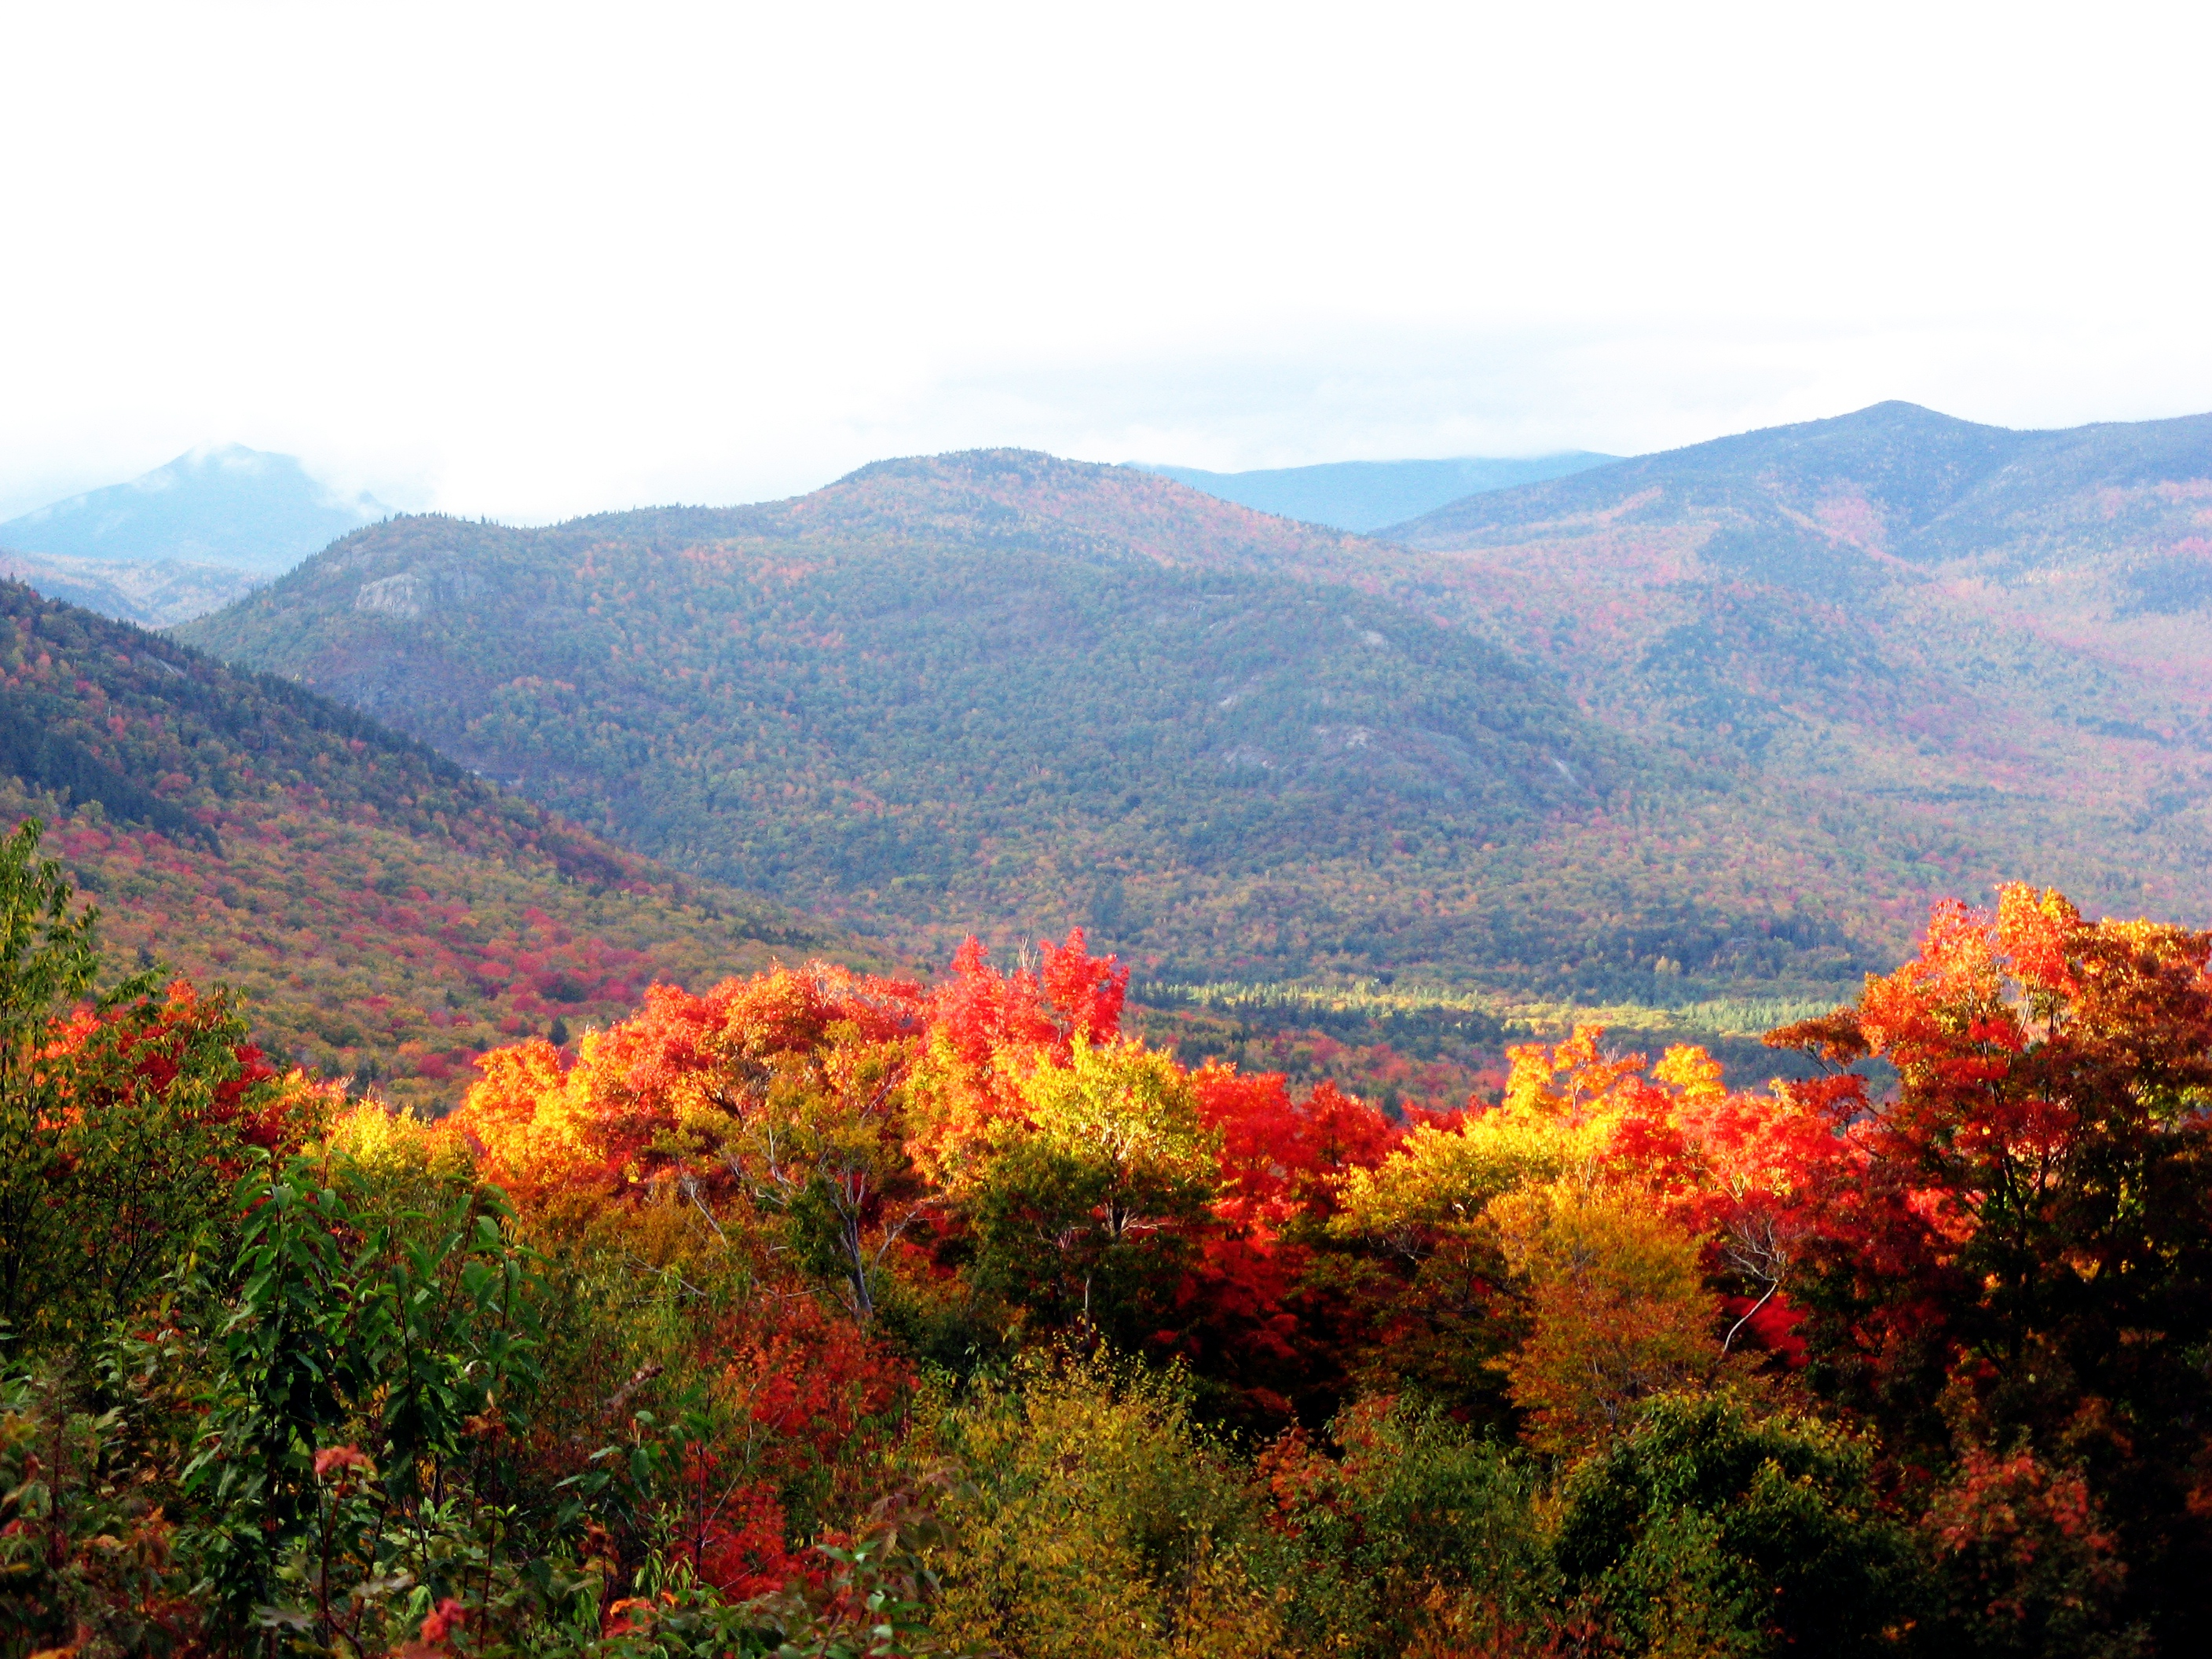 ... hardwood trees in New Hampshire turn colors, attracting many tourists